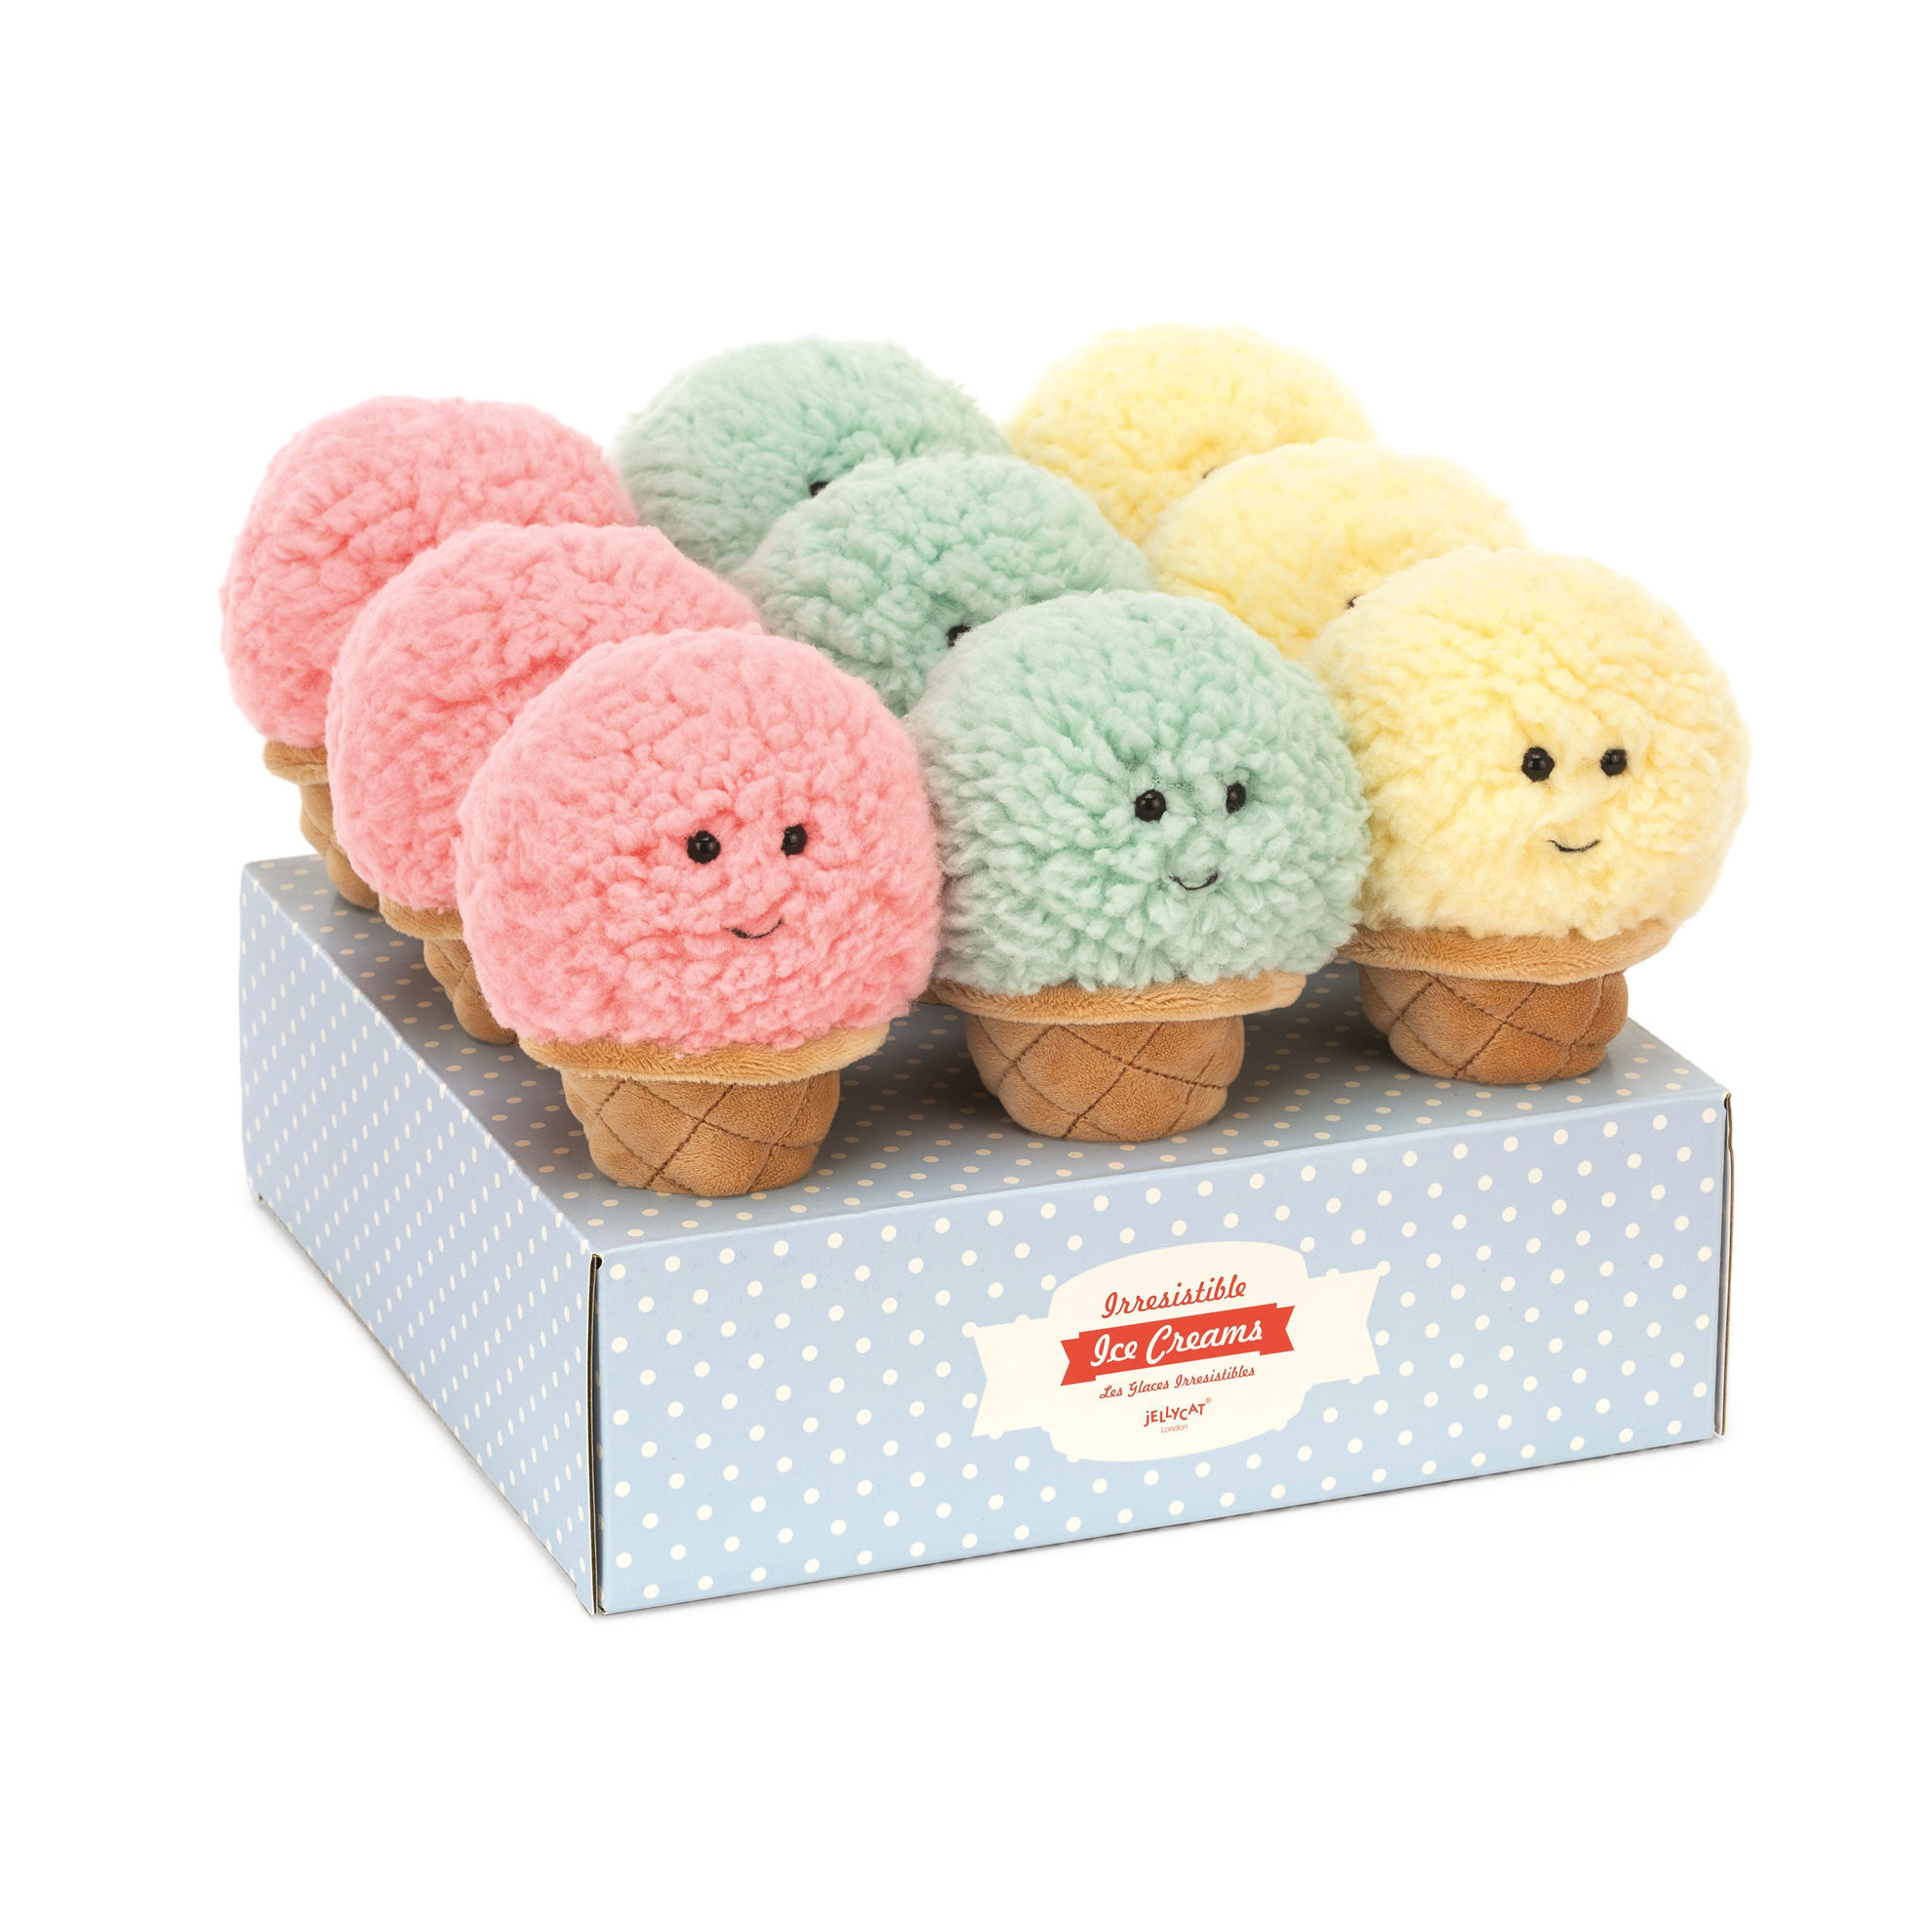 Irresistible Ice Cream (Assorted) by Jellycat